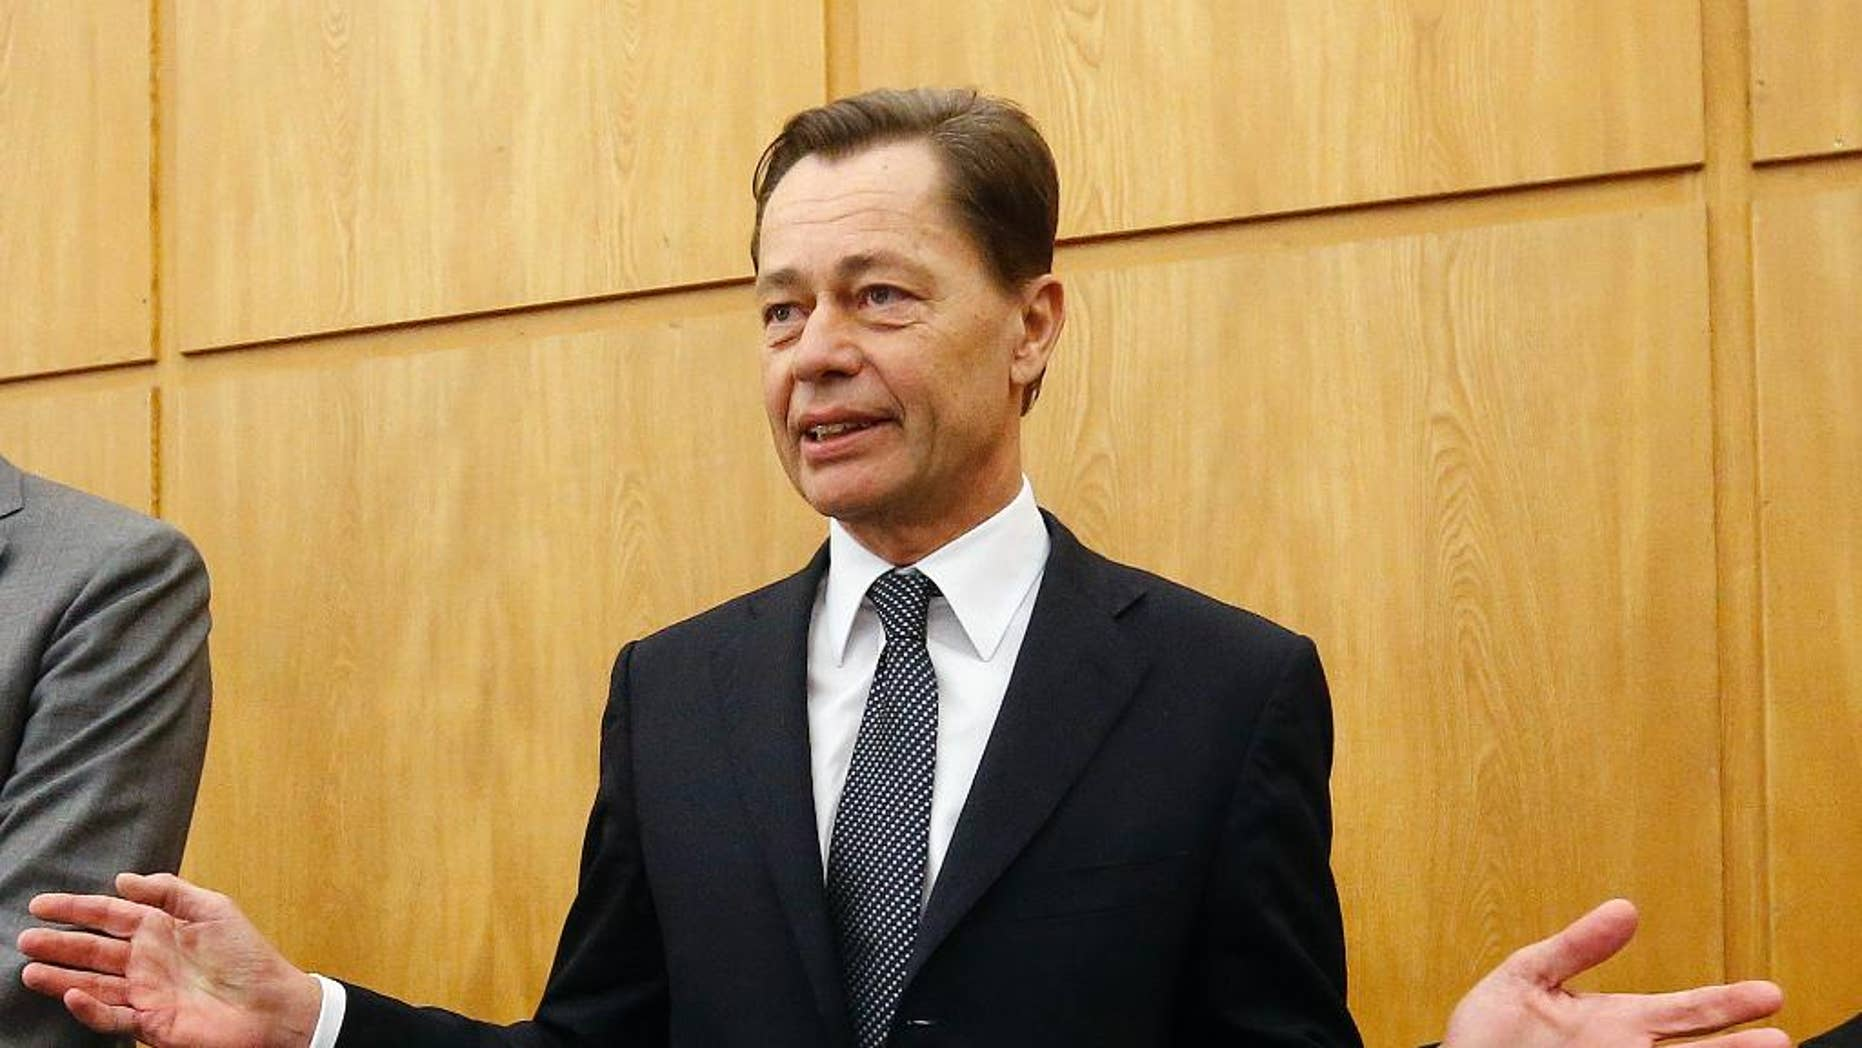 Former Arcandor CEO Thomas Middelhoff gestures in the courtroom of the district court in Essen, Germany, Friday, Nov. 14, 2014. Middelhoff is accused of embezzlement during his work for Arcandor and faces the verdict today. (AP Photo/Frank Augstein)